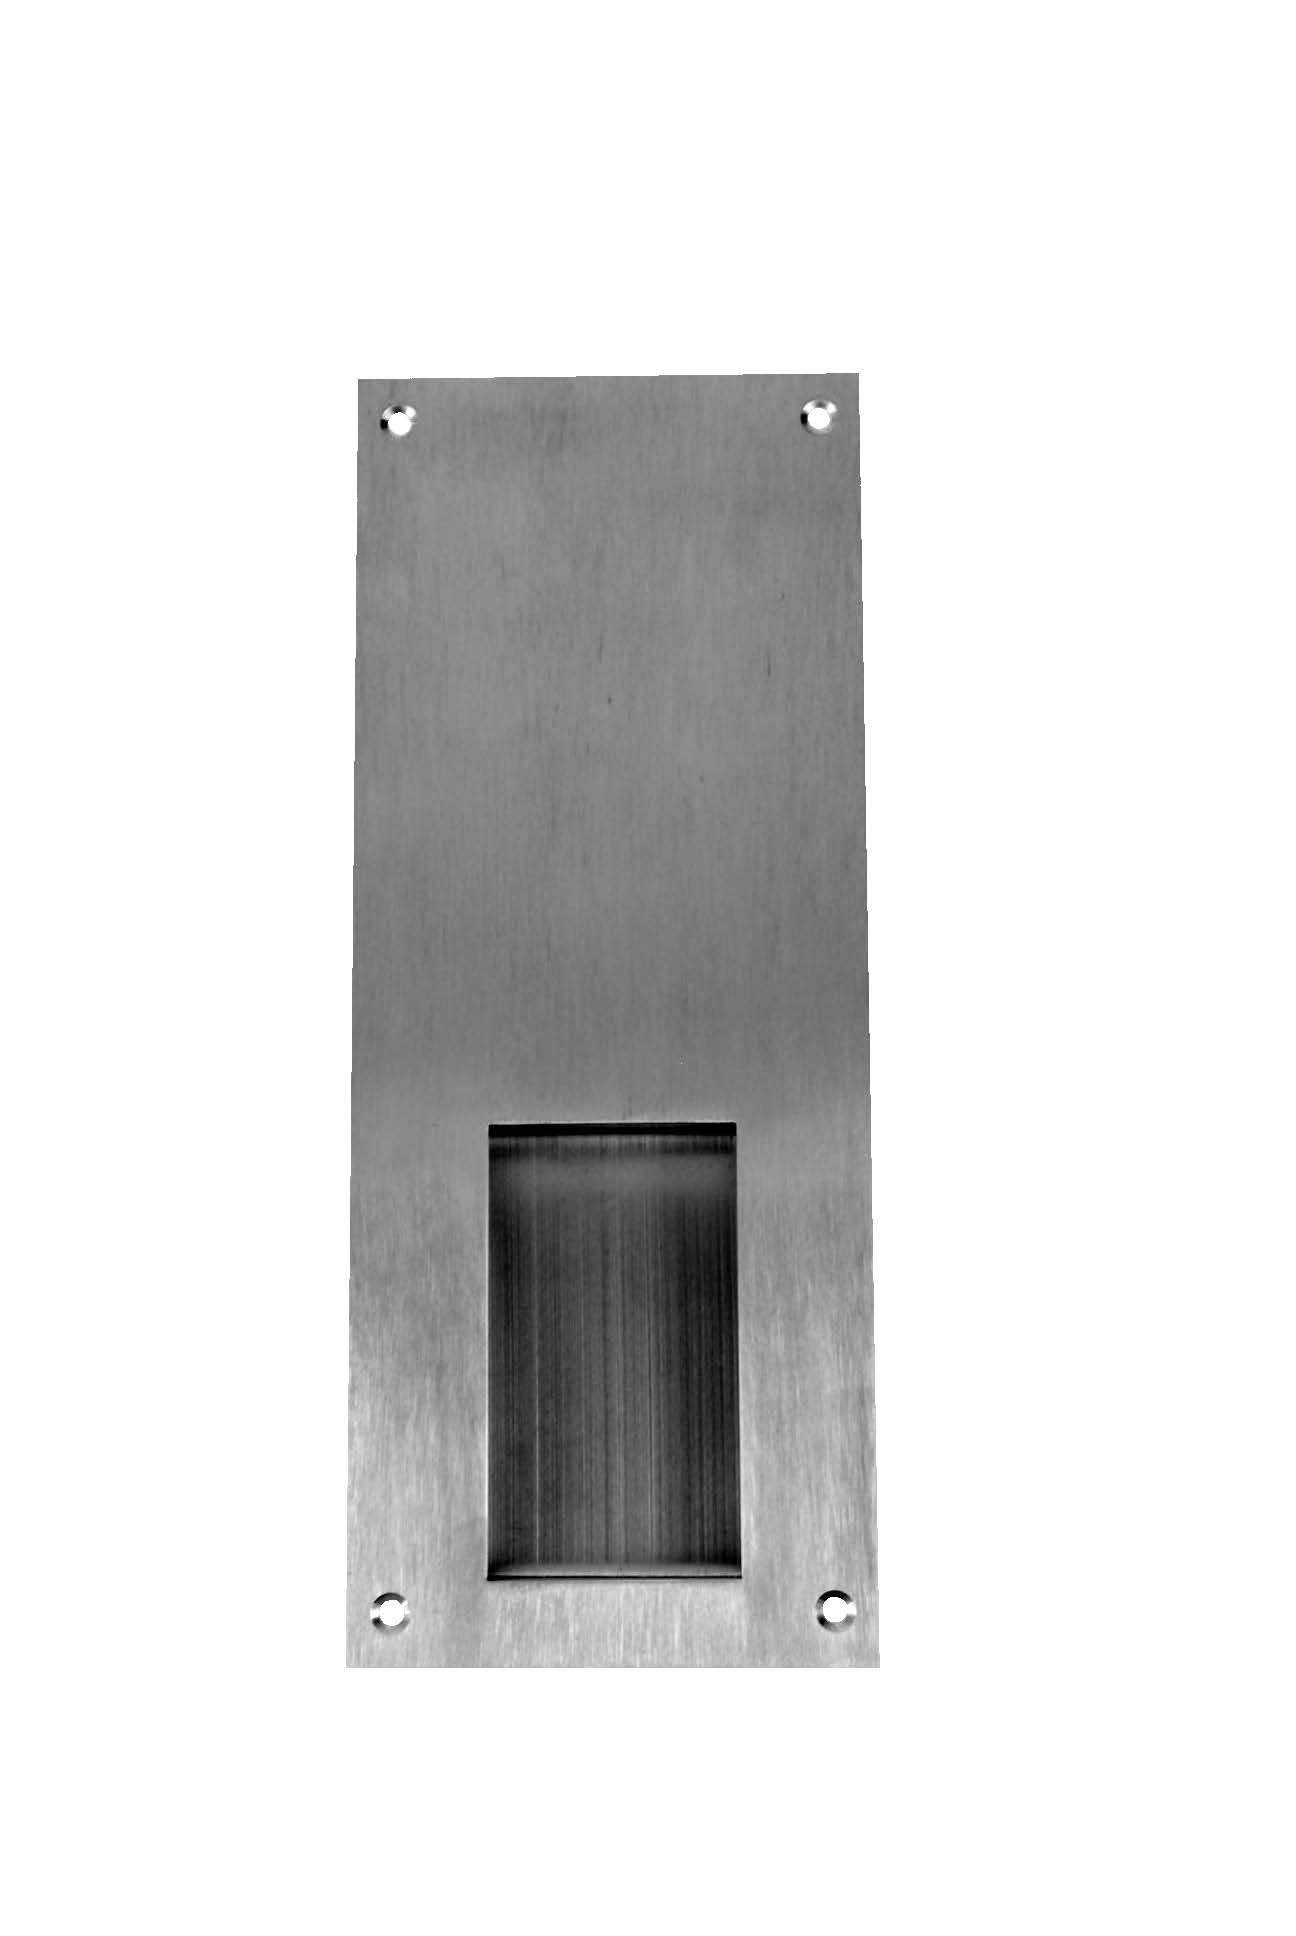 Don-Jo 1858 16 Gauge Stainless Steel Flush Cup Pull, Satin Stainless Steel Finish, 4'' Width x 10'' Height x 3/4'' Depth